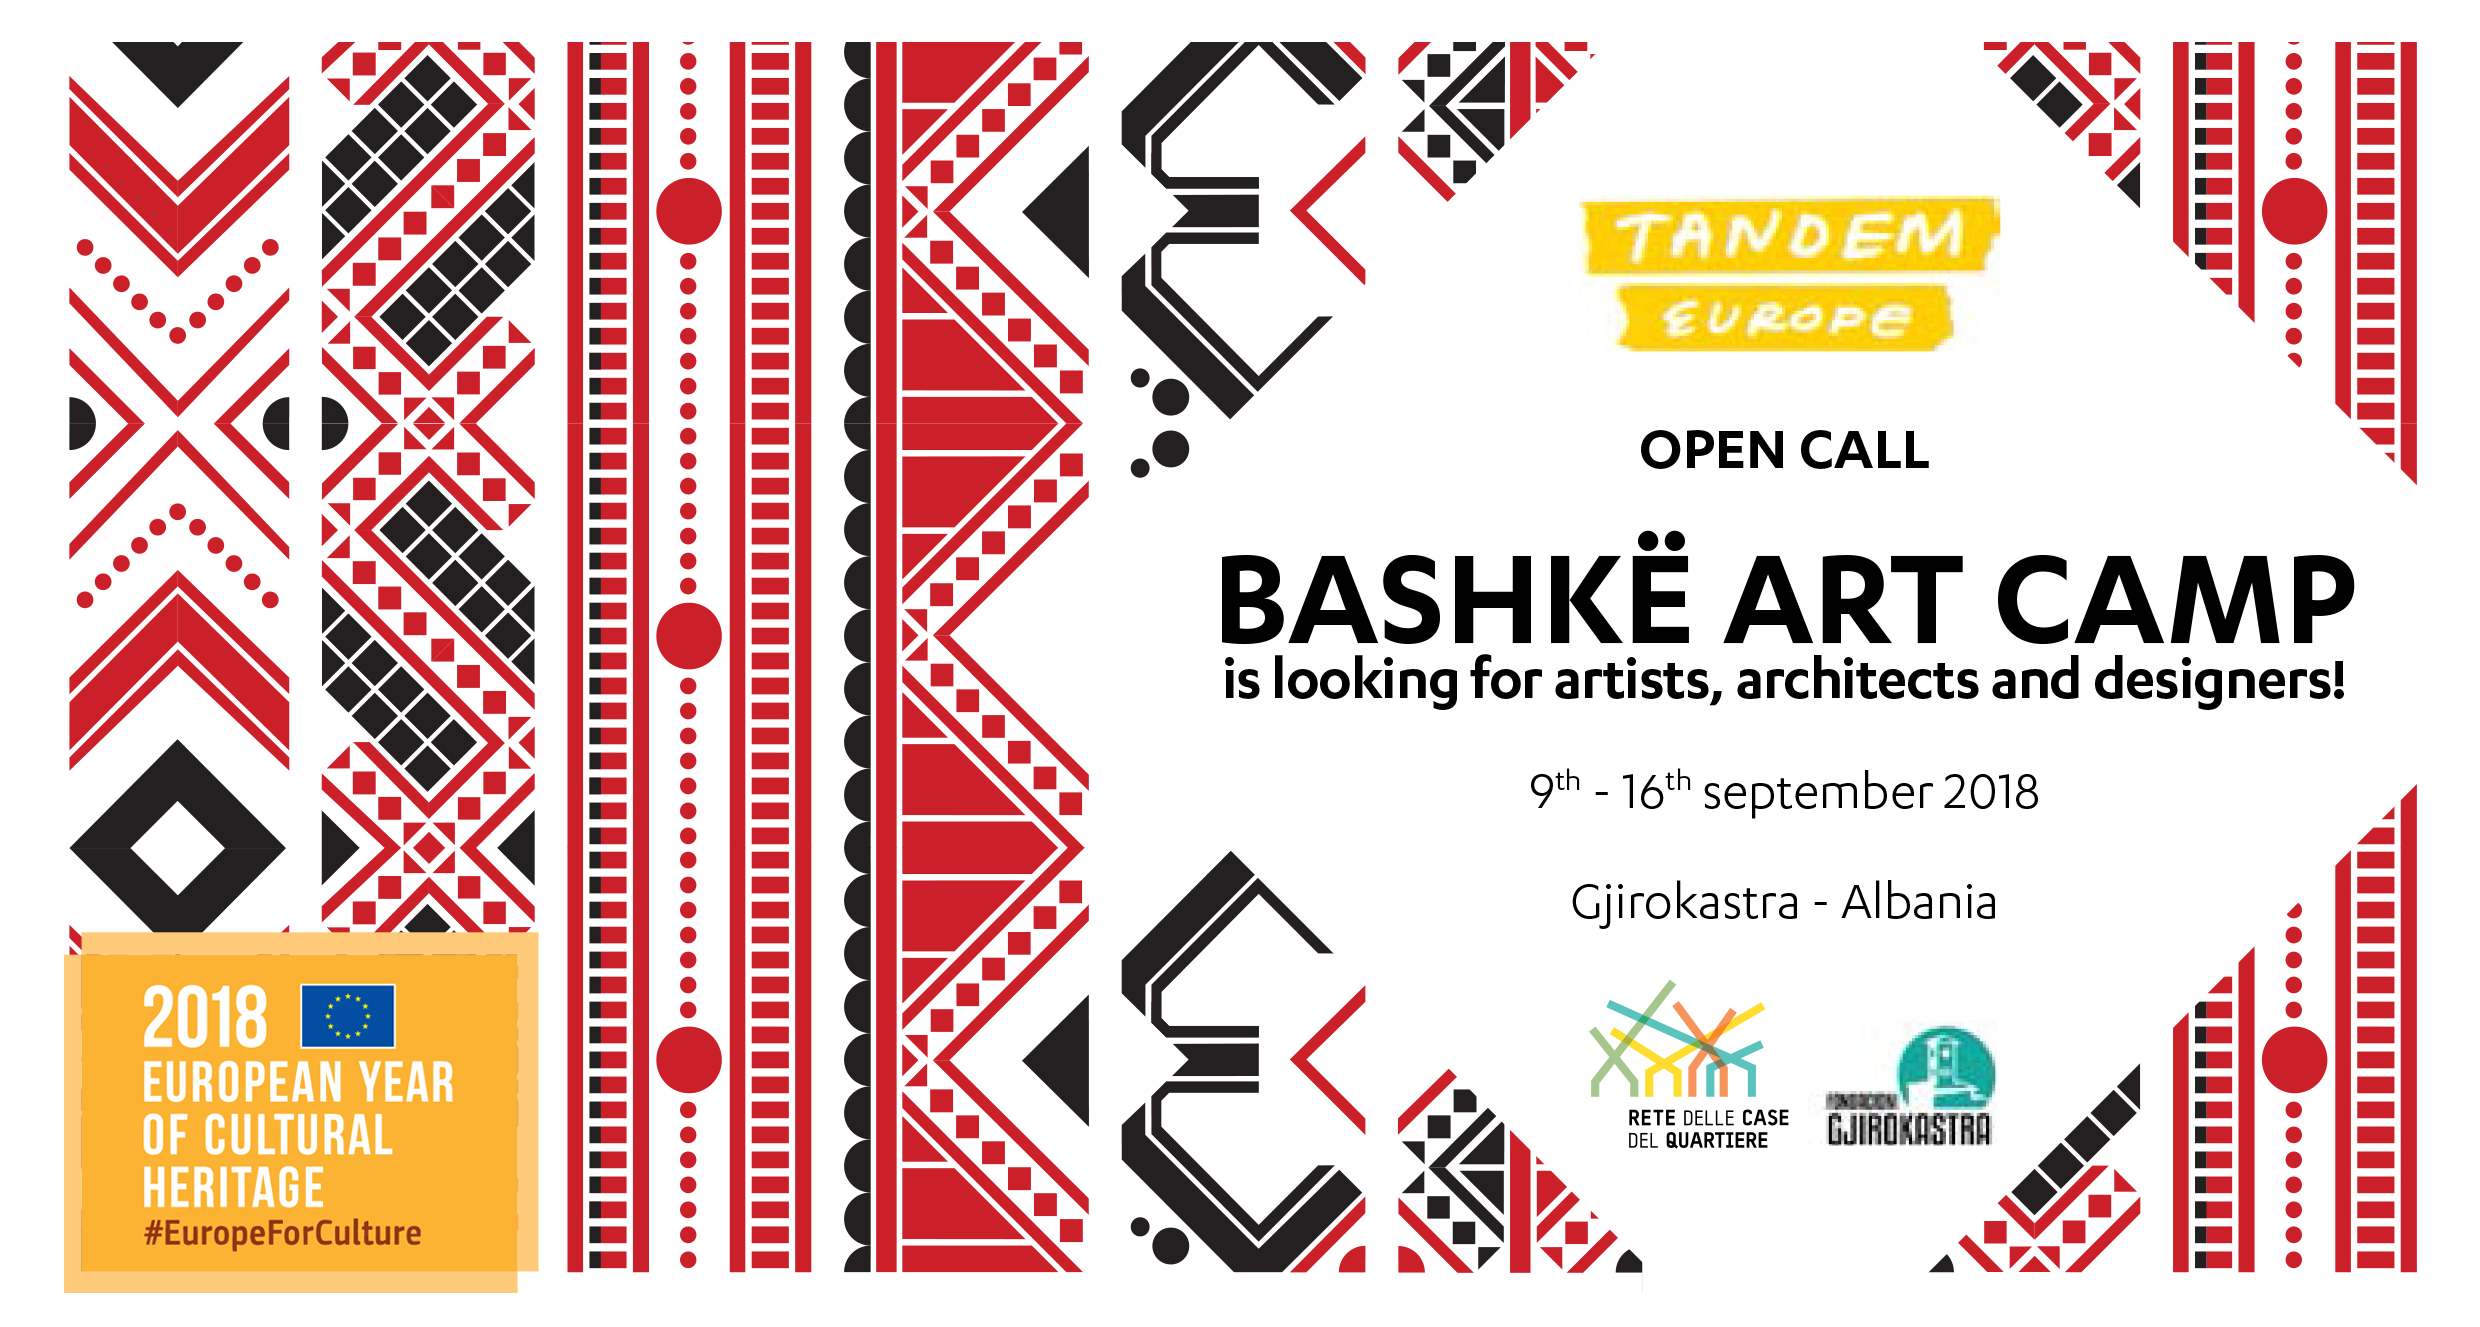 CALL FOR APPLICATION for the BASHKË ART CAMP 2018 now open!